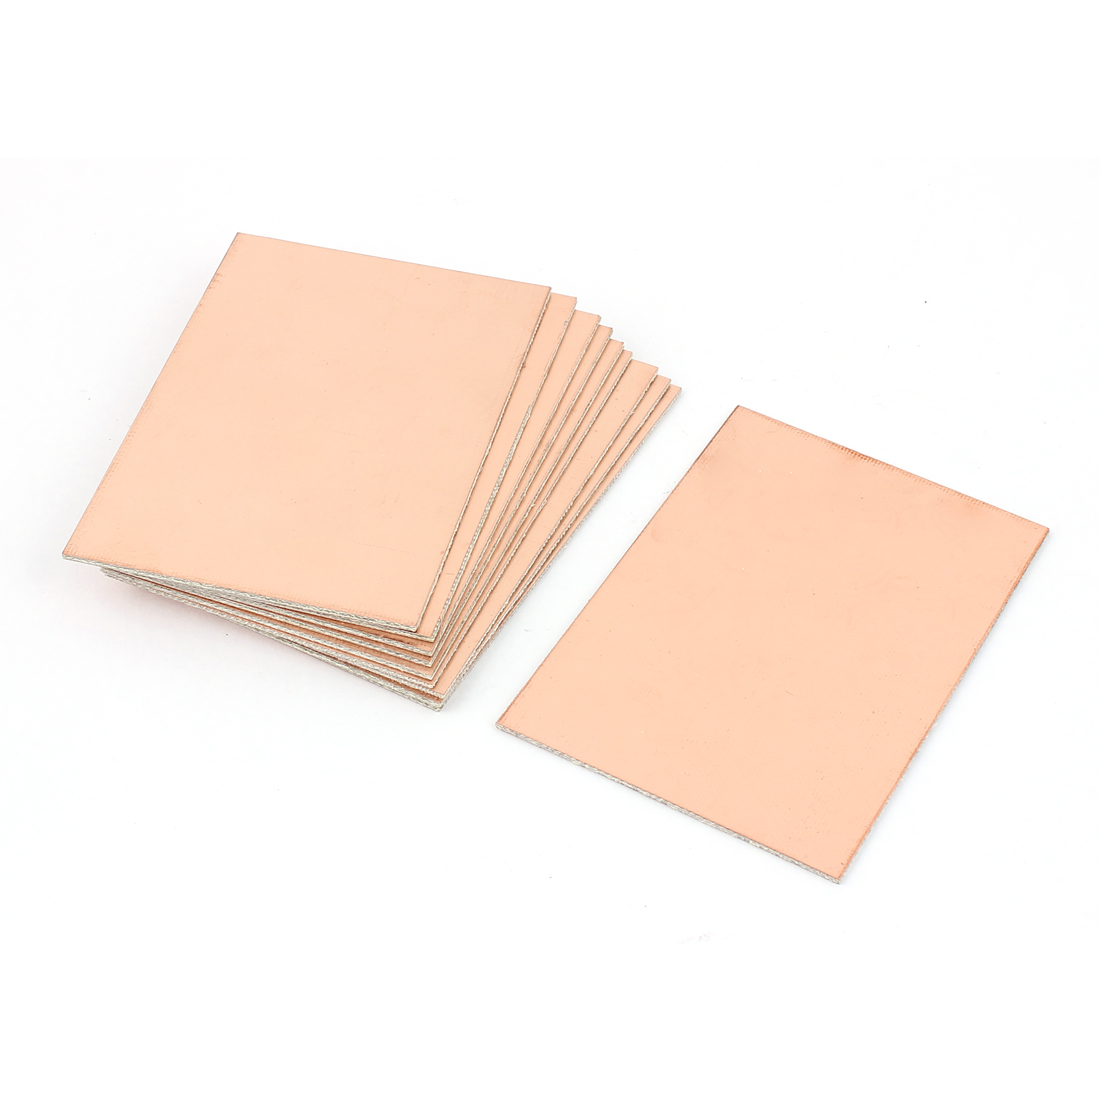 10cm x 7cm x 0.15cm FR-4 Single Side Copper Clad PCB Laminate Board 10 Pcs